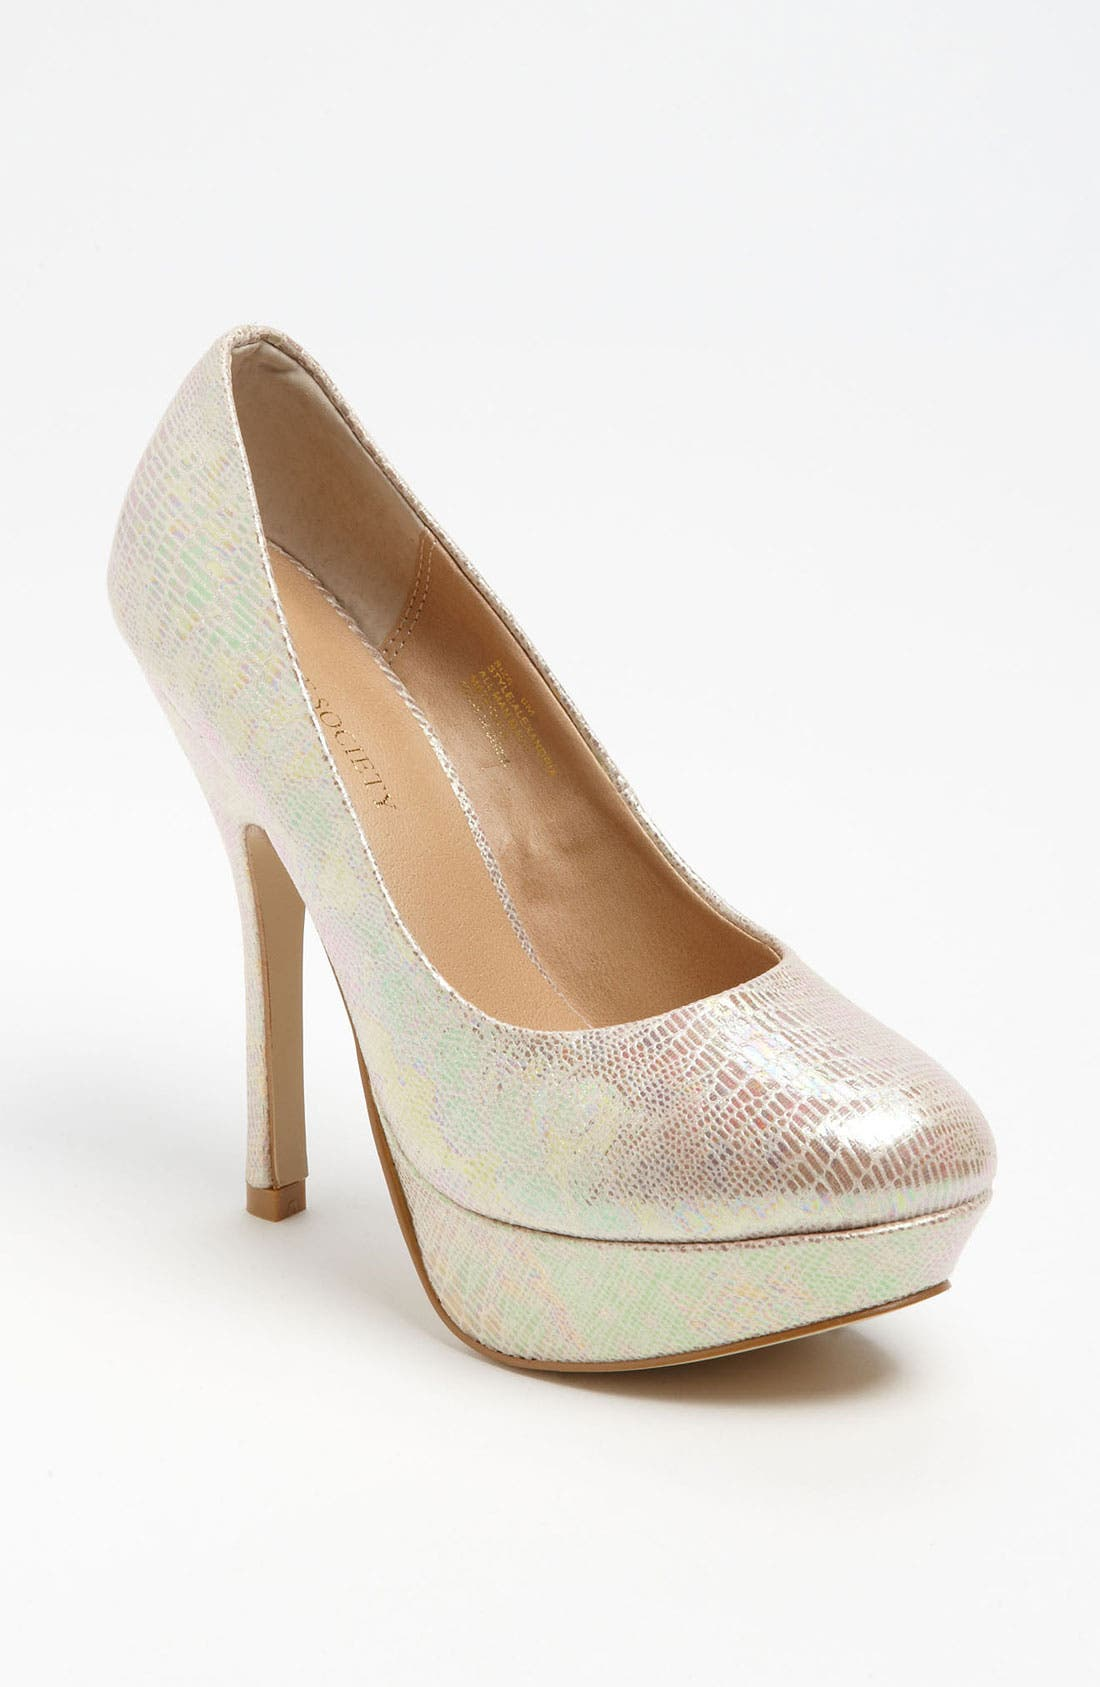 Main Image - Sole Society 'Alexandria' Pump